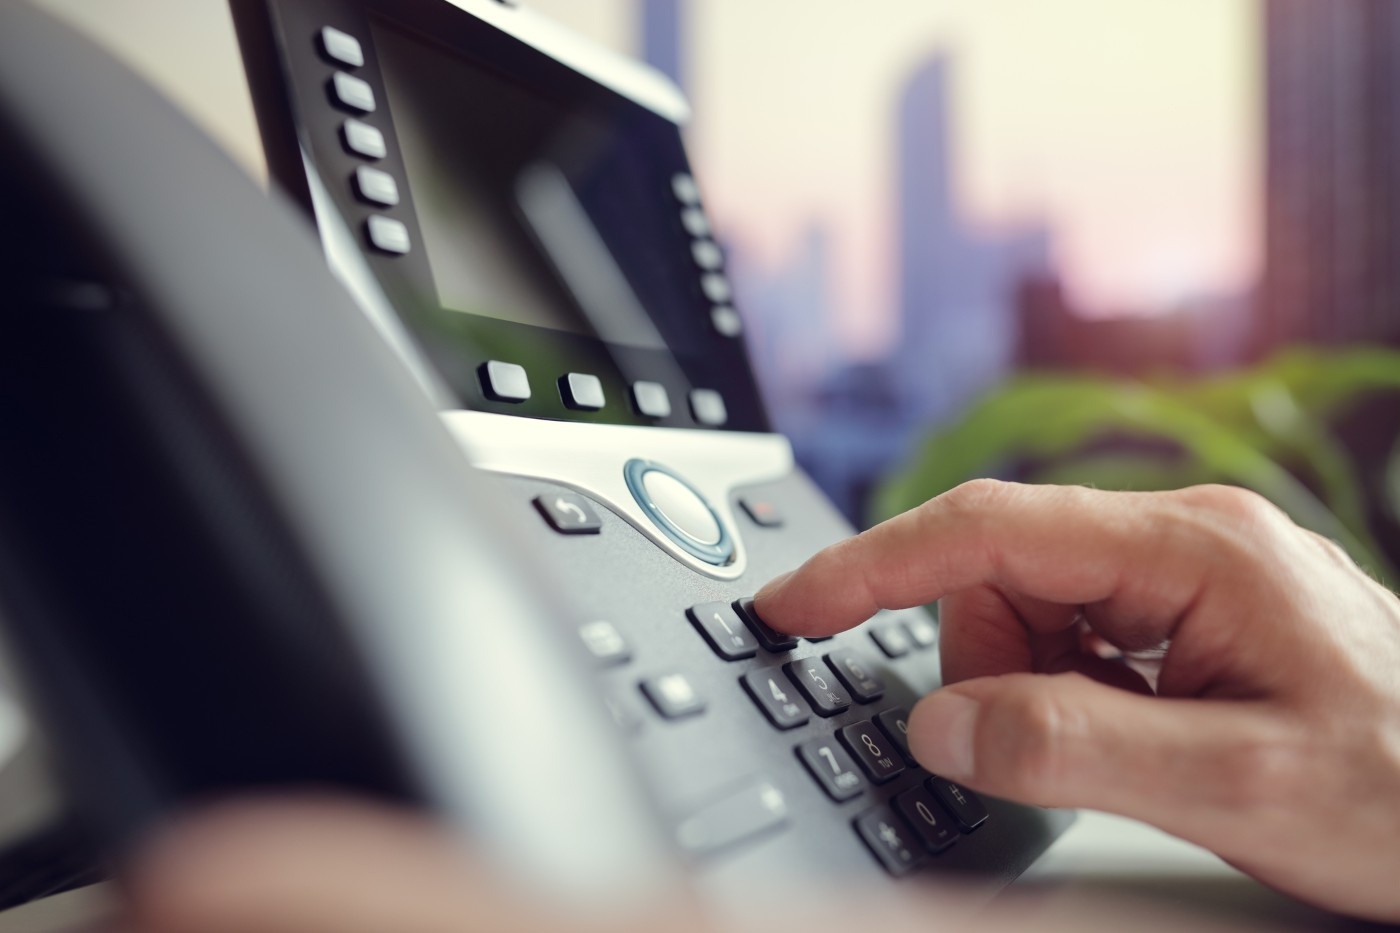 https://tickertapecdn.tdameritrade.com/assets/images/pages/md/Hand dialing on a business phone: Quarterly earnings calls